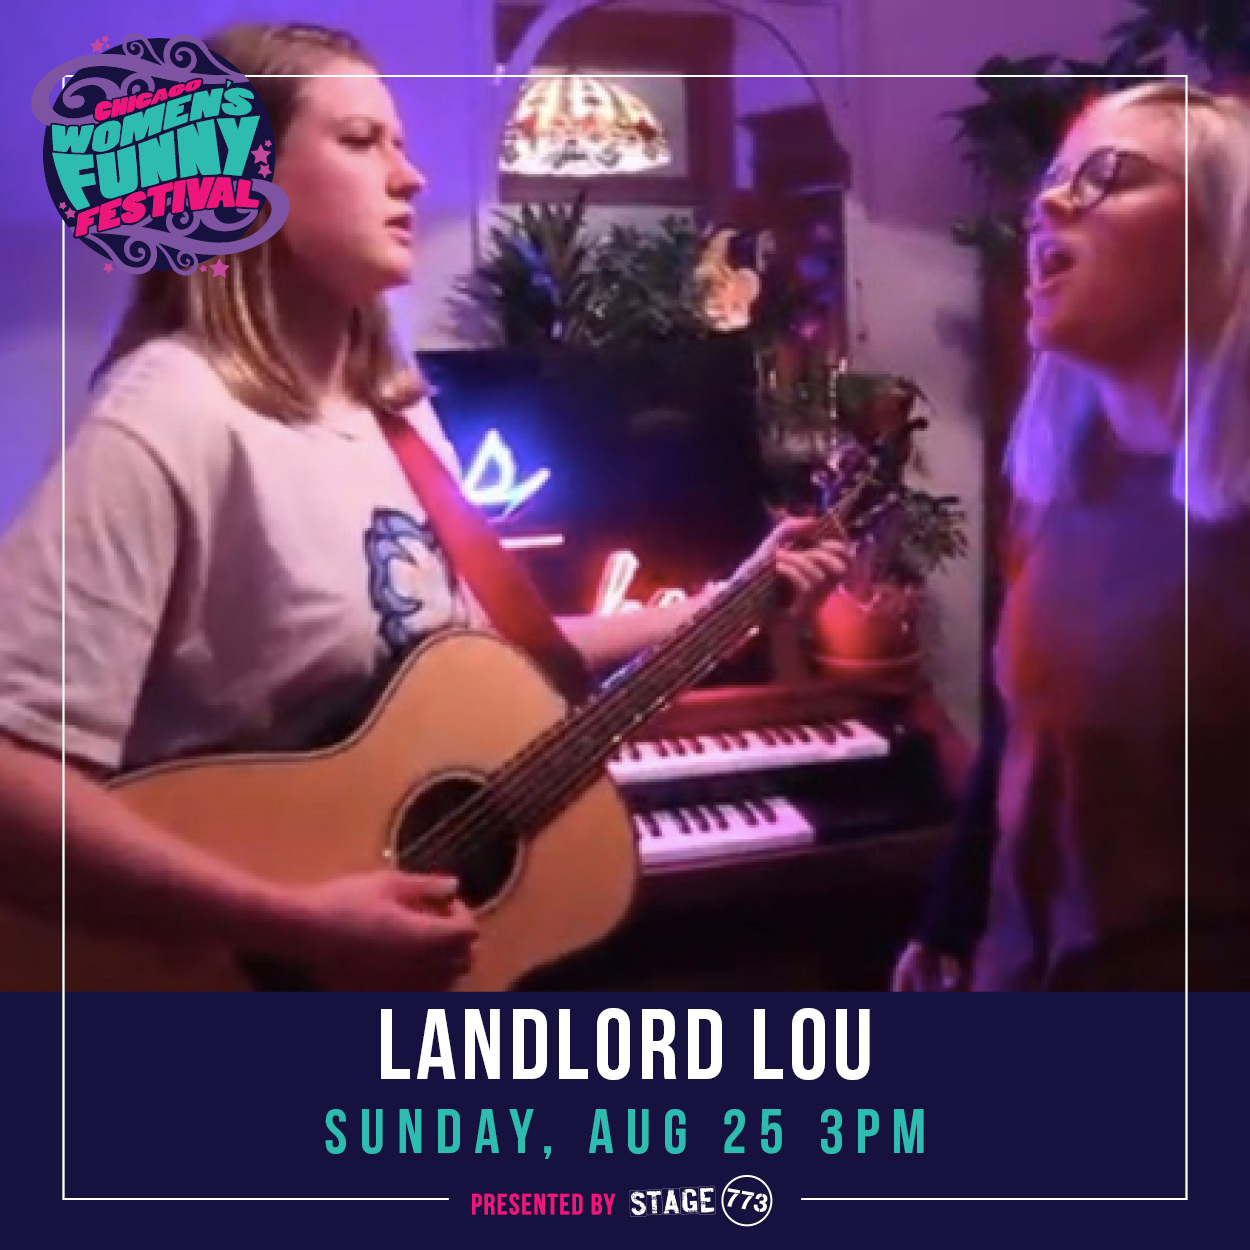 LandlordLou_Sunday_3PM_CWFF2019.jpg